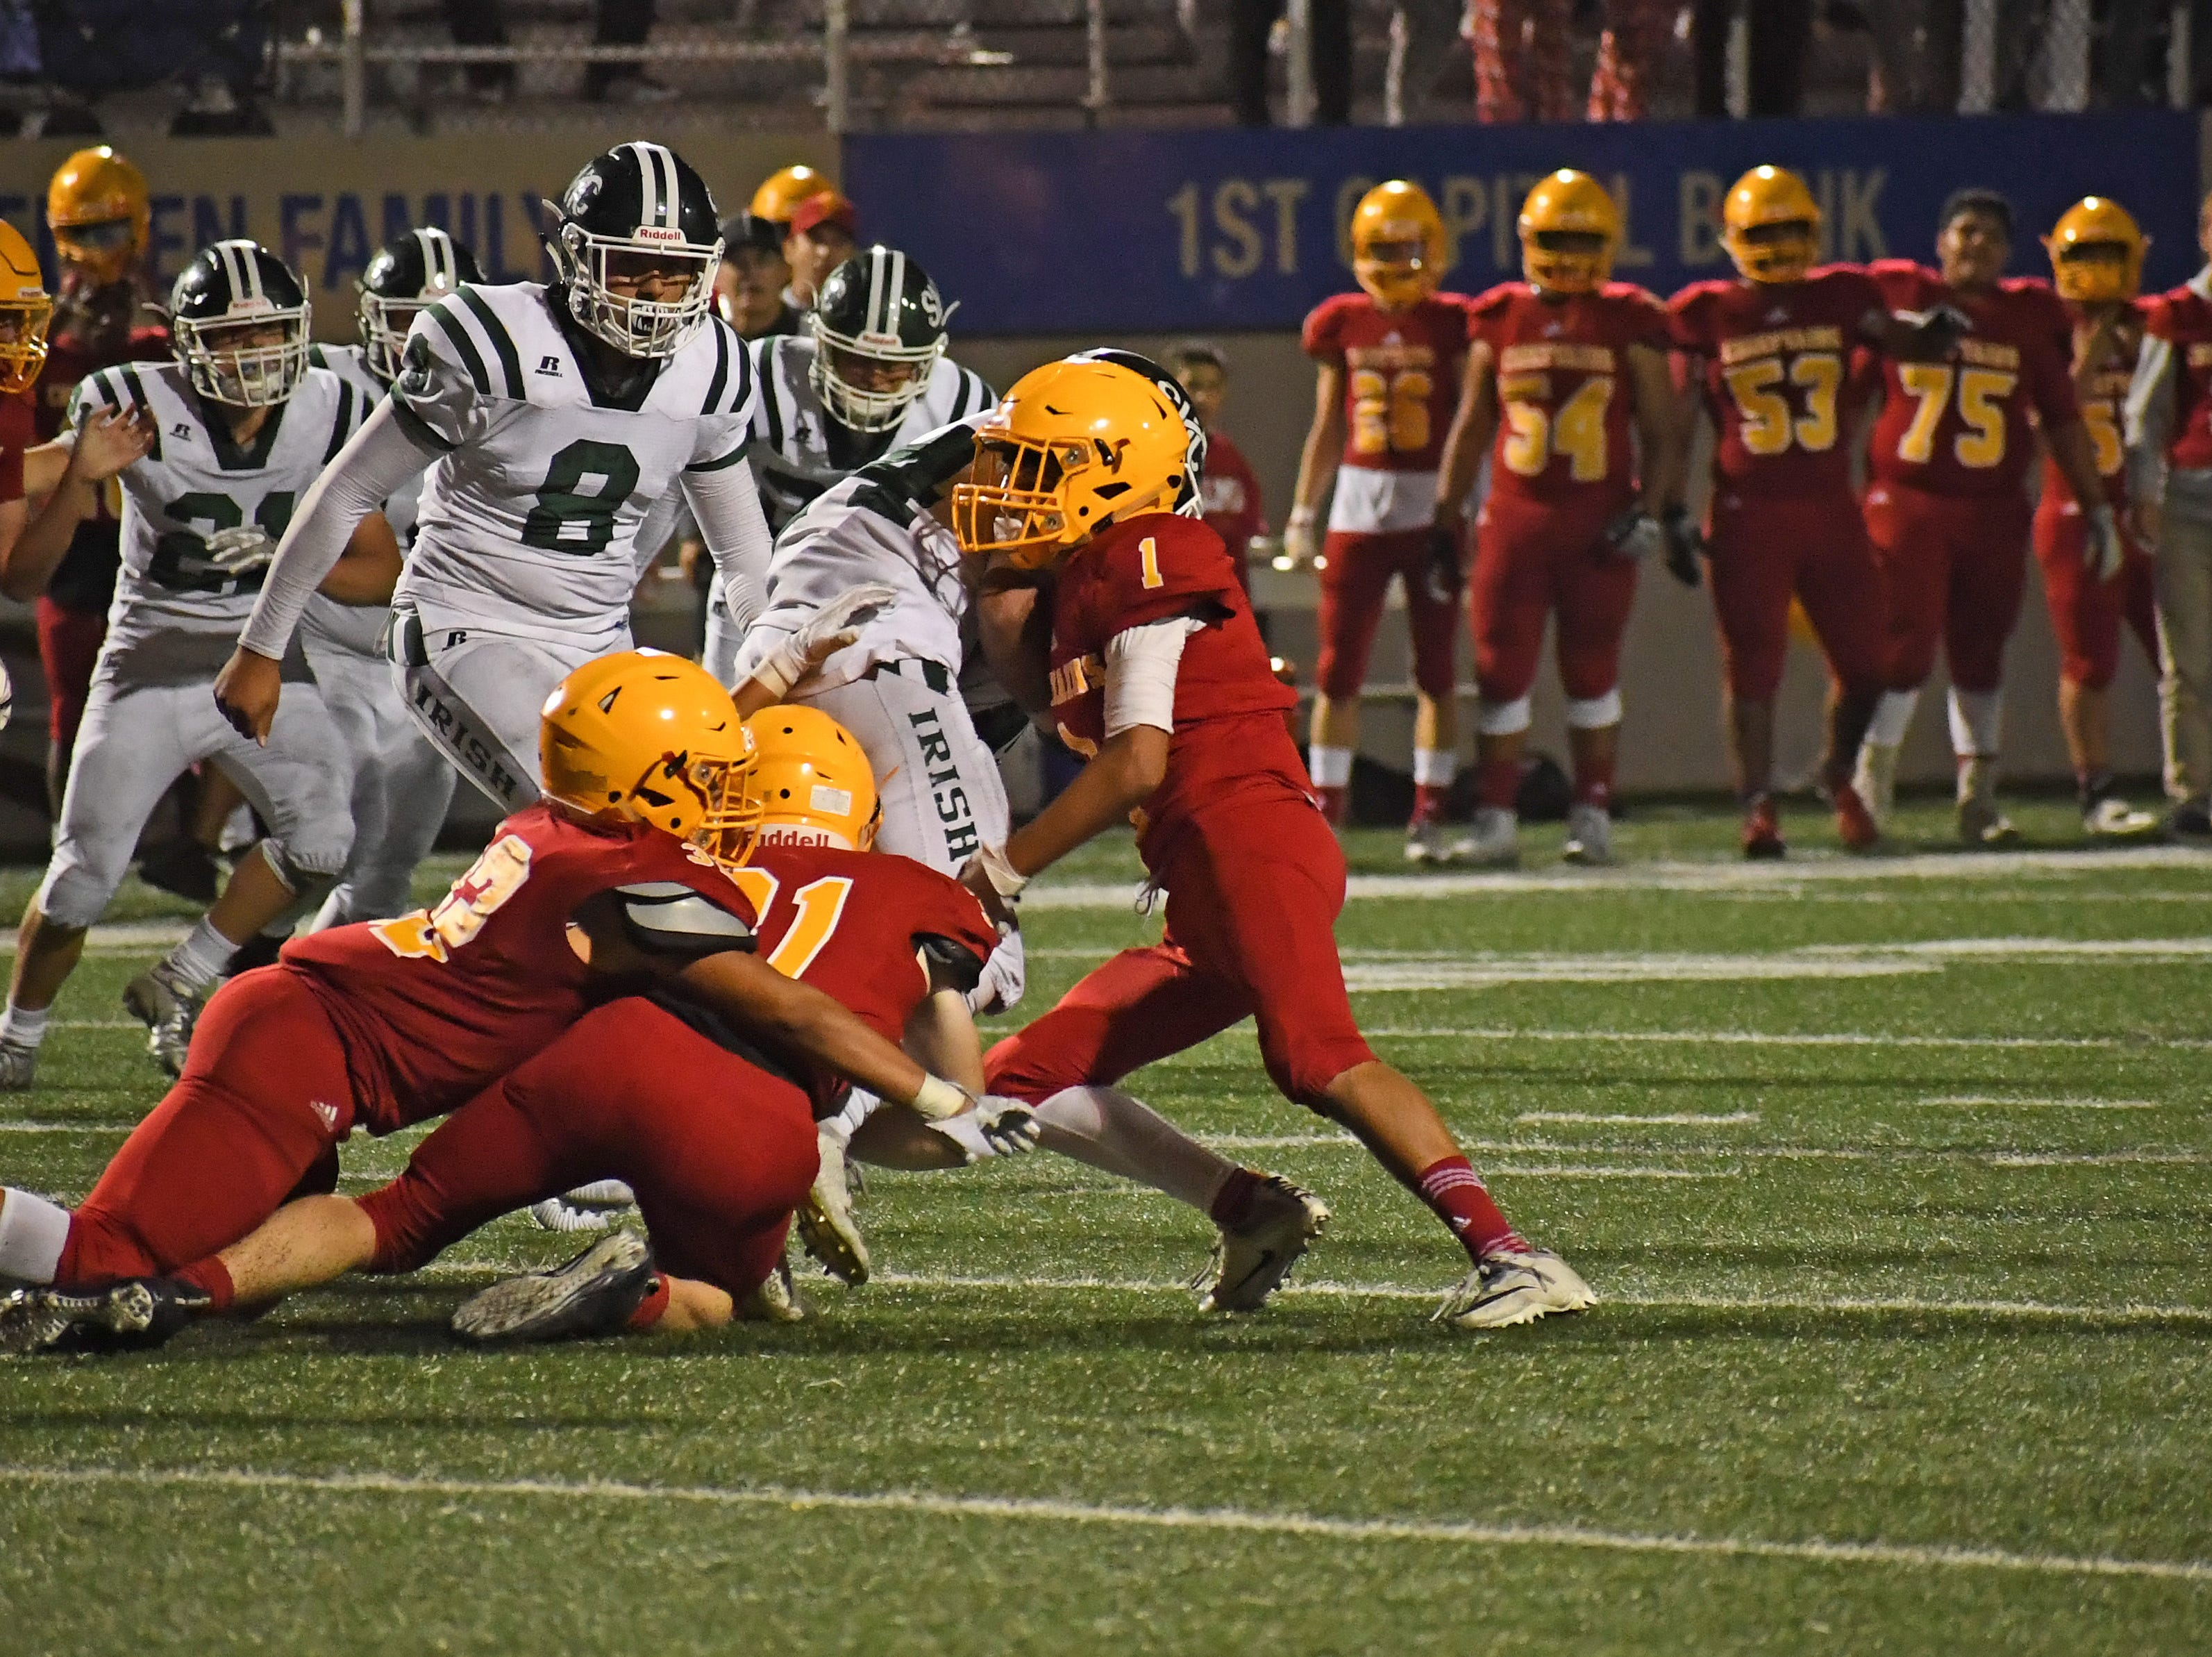 Palma defenders Brent Eastman (31), Diego Guajardo (32) and Abel Escobar (1) rally to take down a Sacred Heart Cathedral running back.